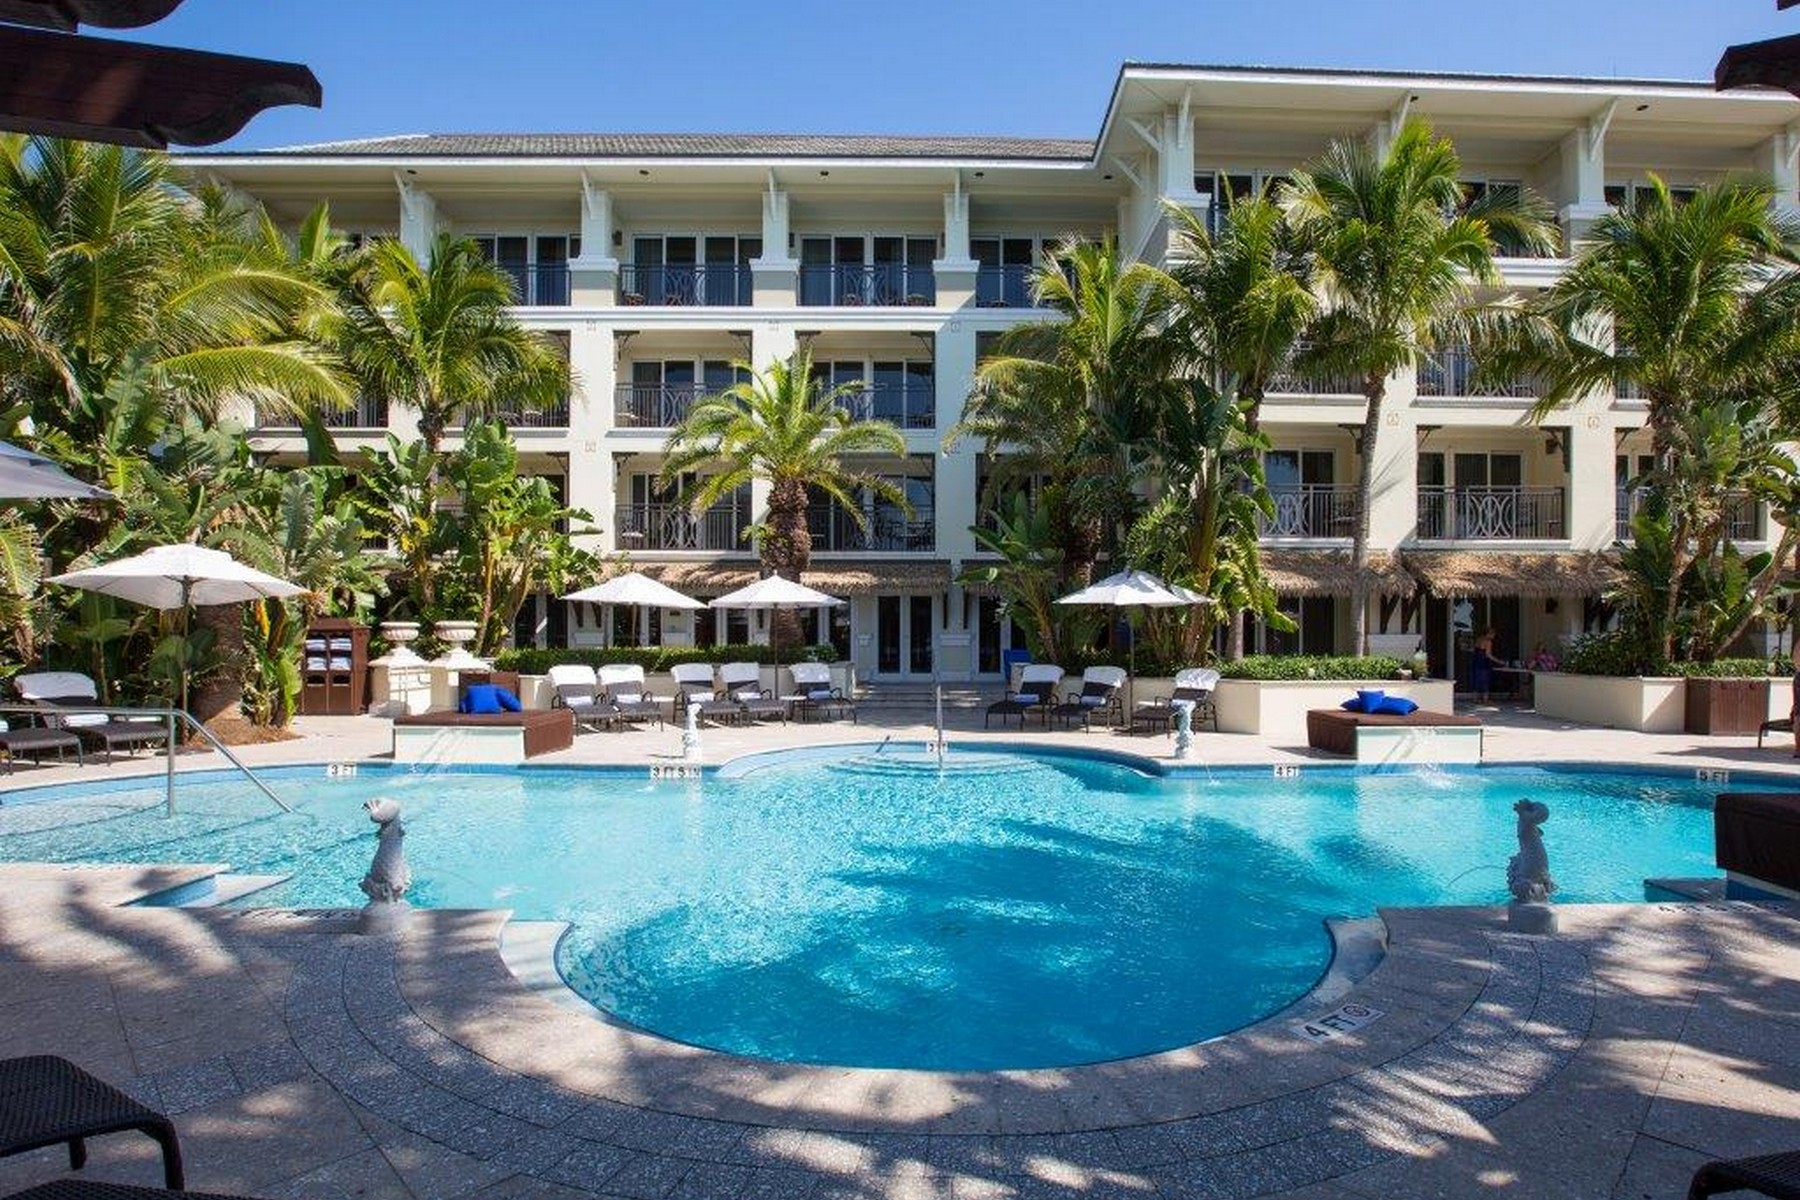 Condominium for Sale at Elegant Oceanfront Condo in Vero Beach Hotel & Spa 3500 Ocean Drive #207 Vero Beach, Florida, 32963 United States